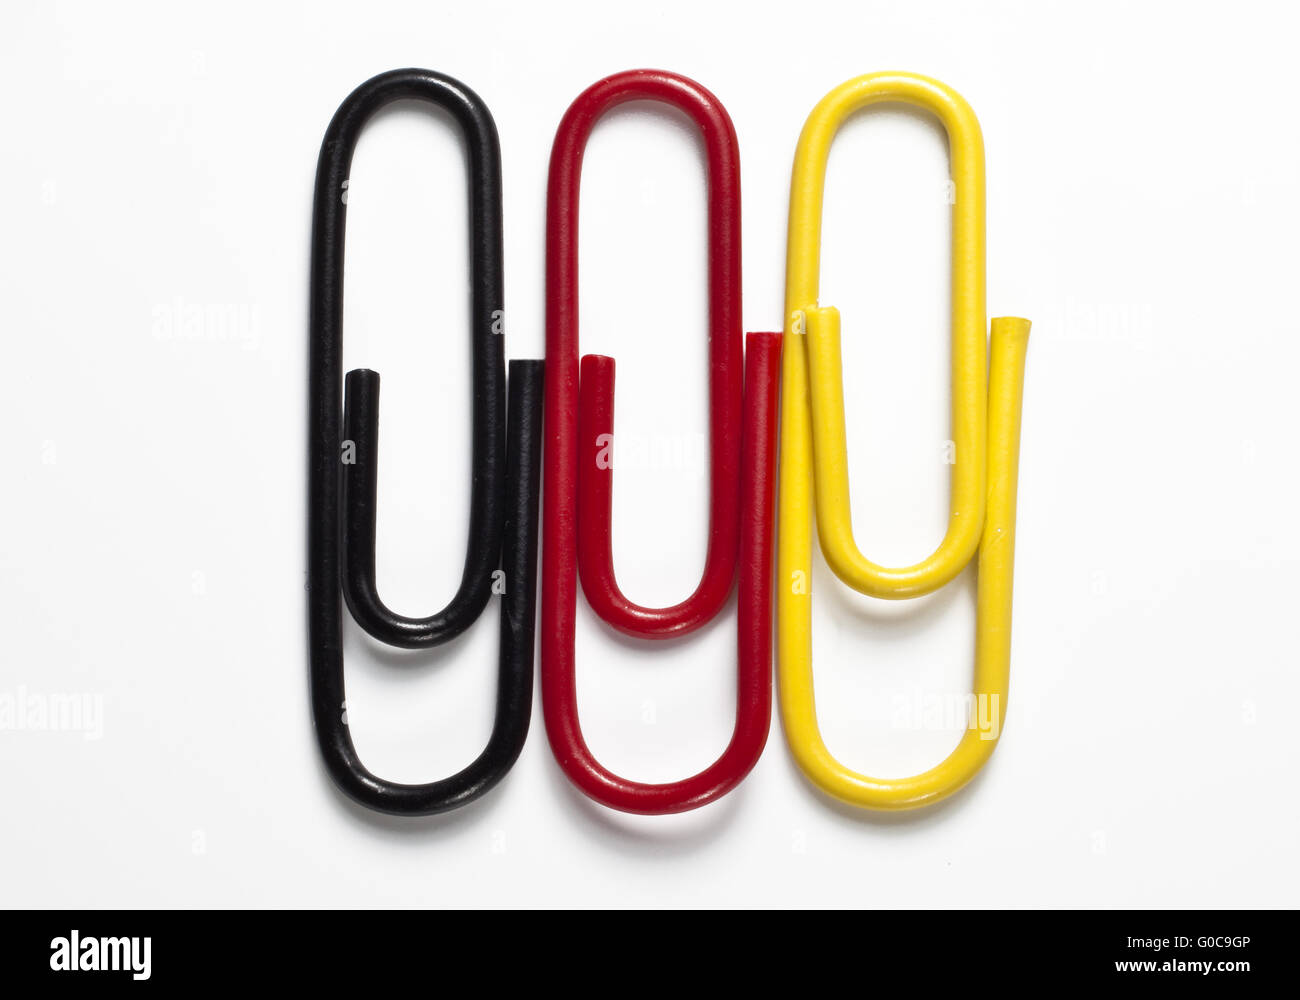 Black, red and yellow paper clips, Germany - Stock Image